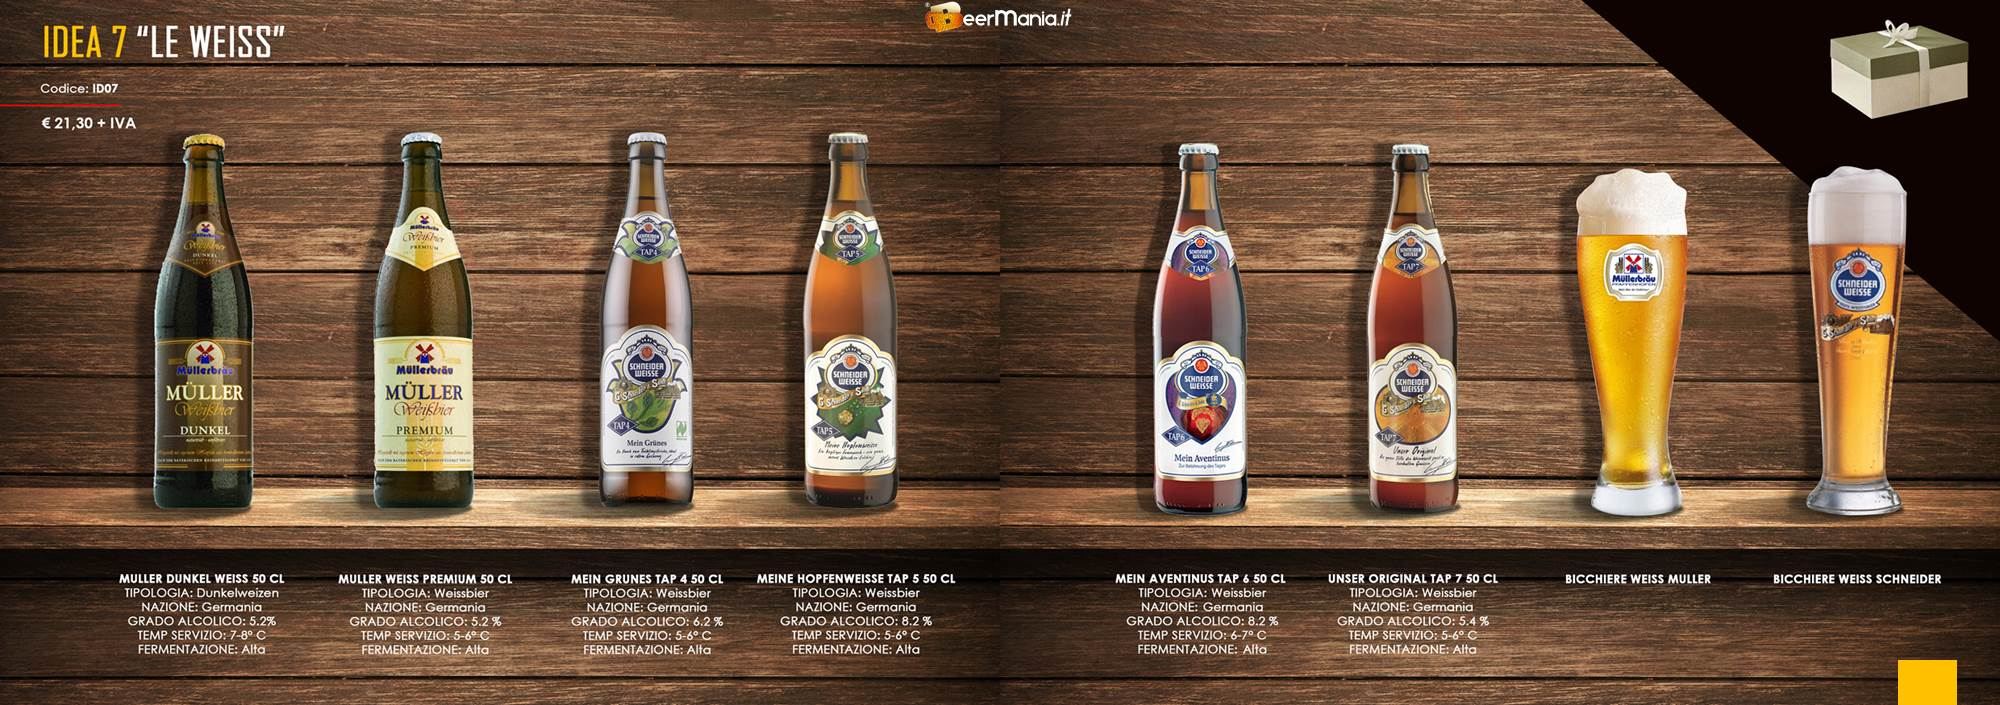 selezione weiss_beermania